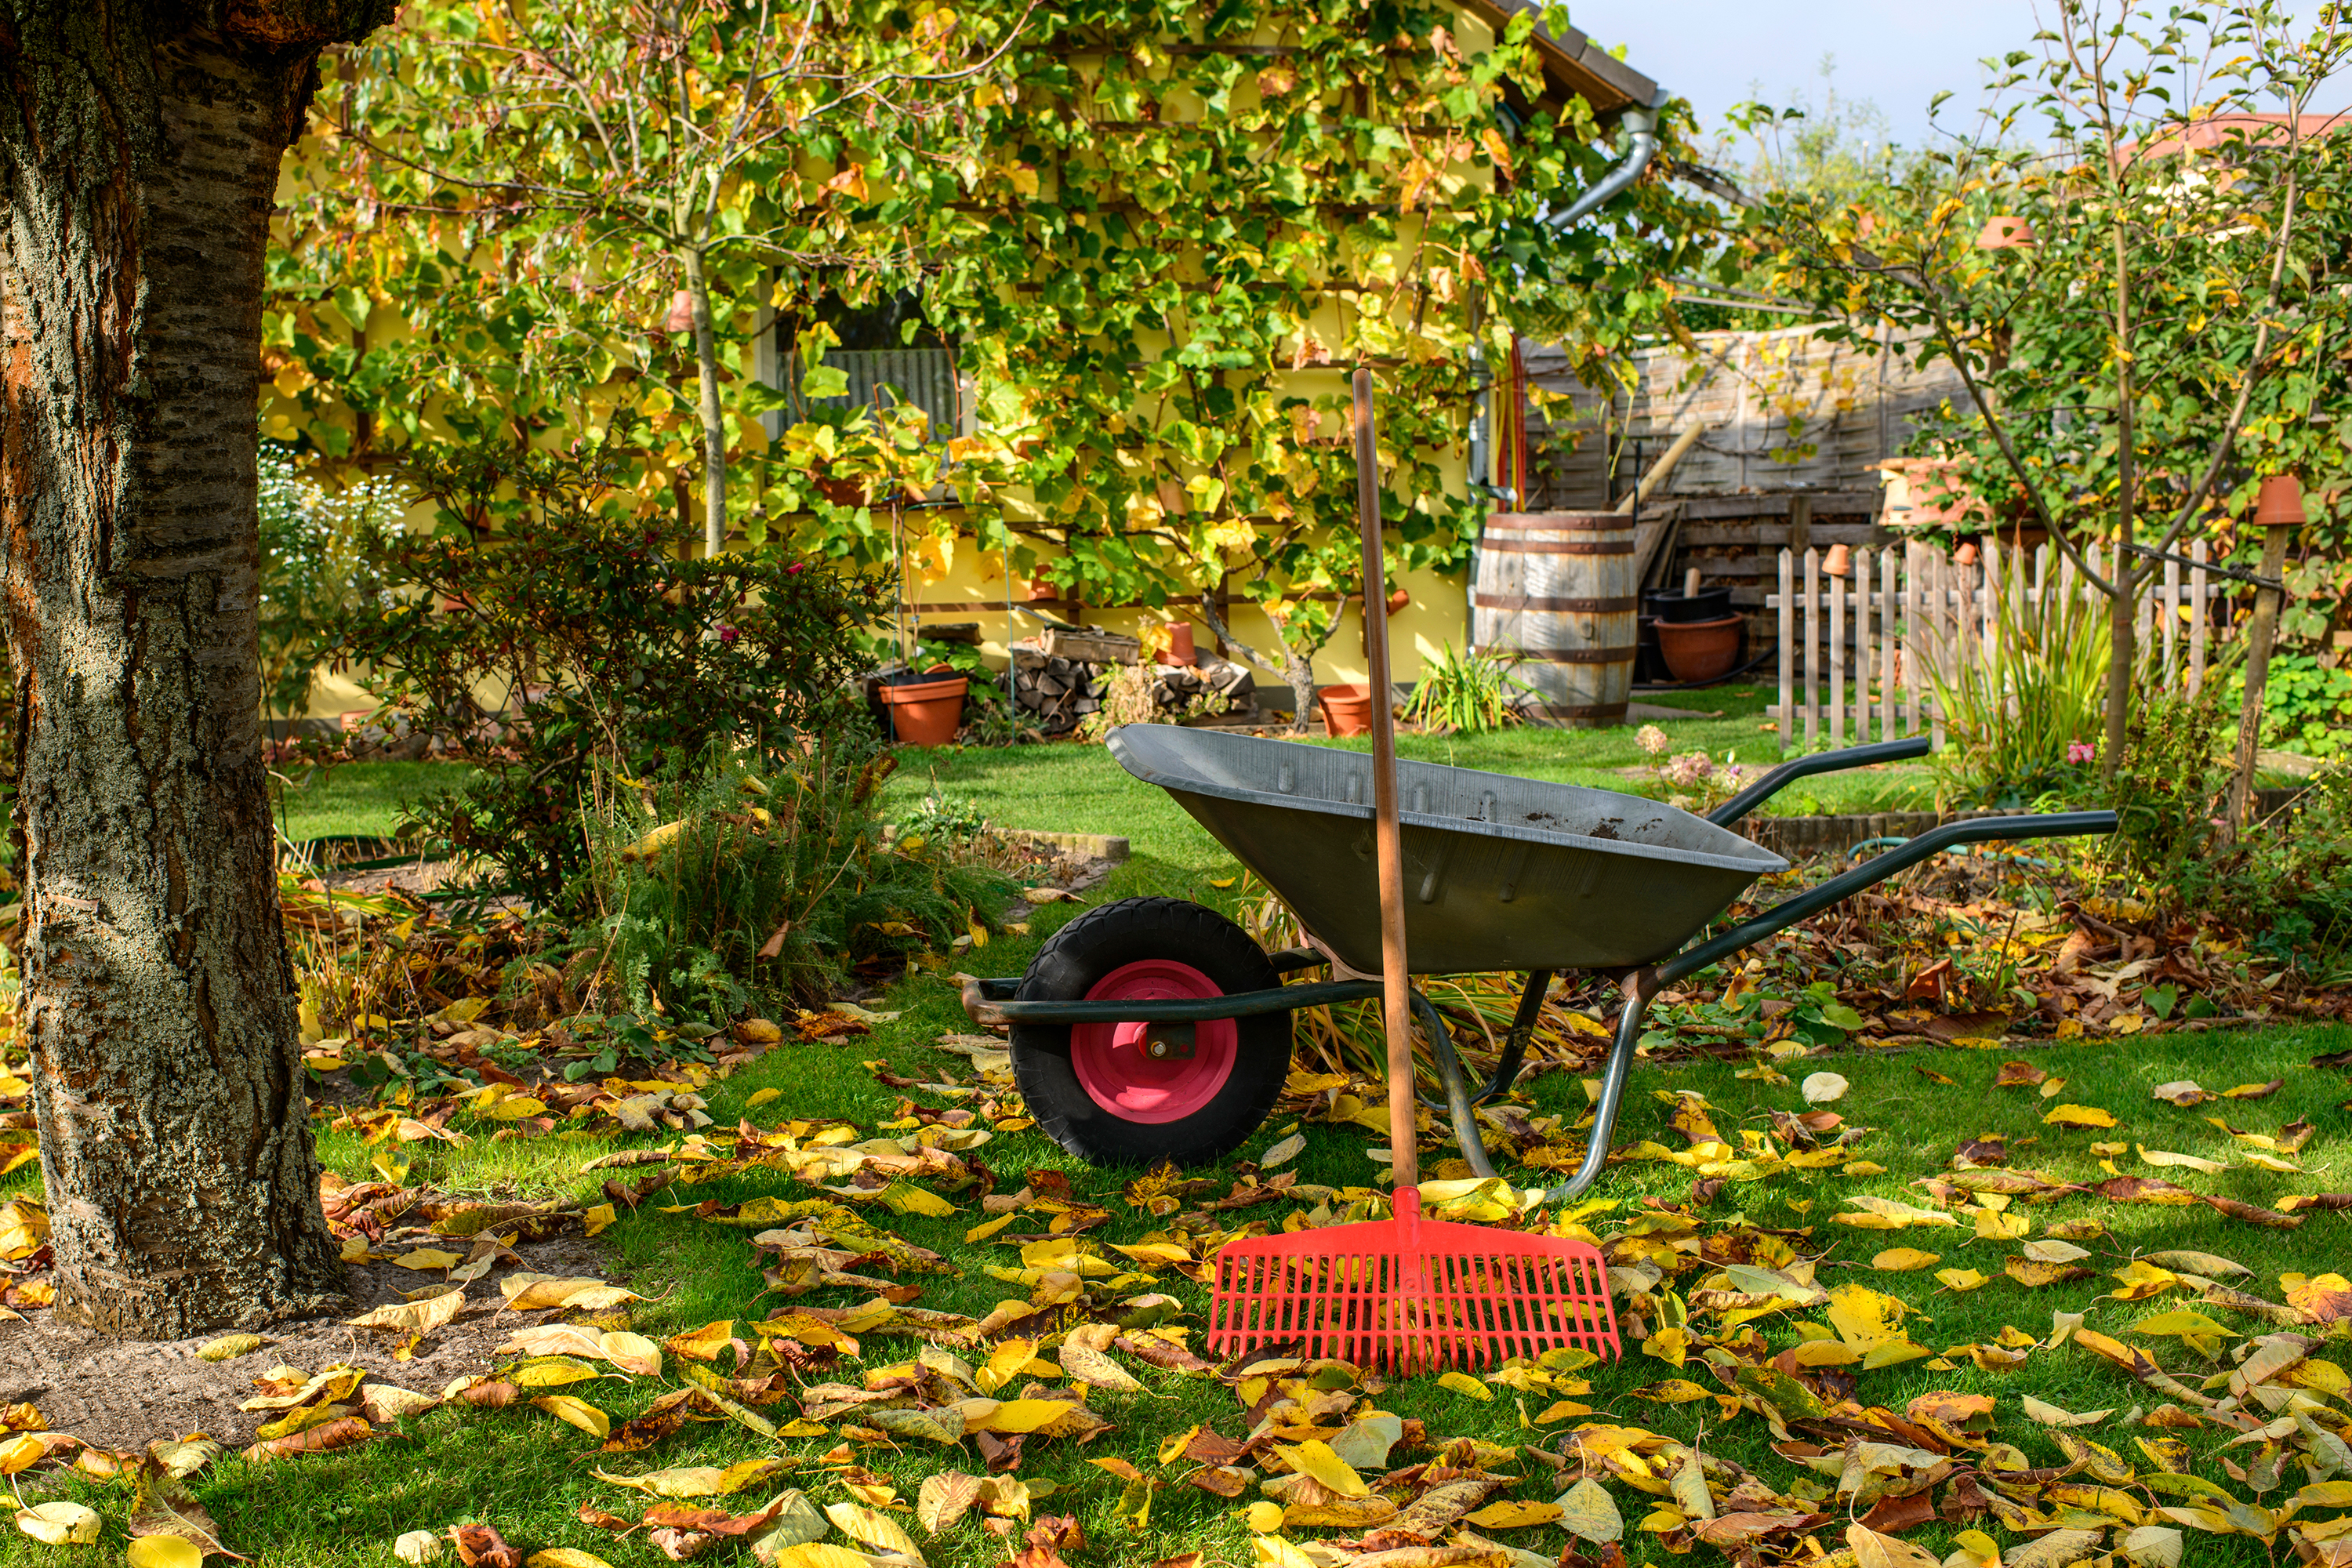 Wheel barrow in lawn with leaves.